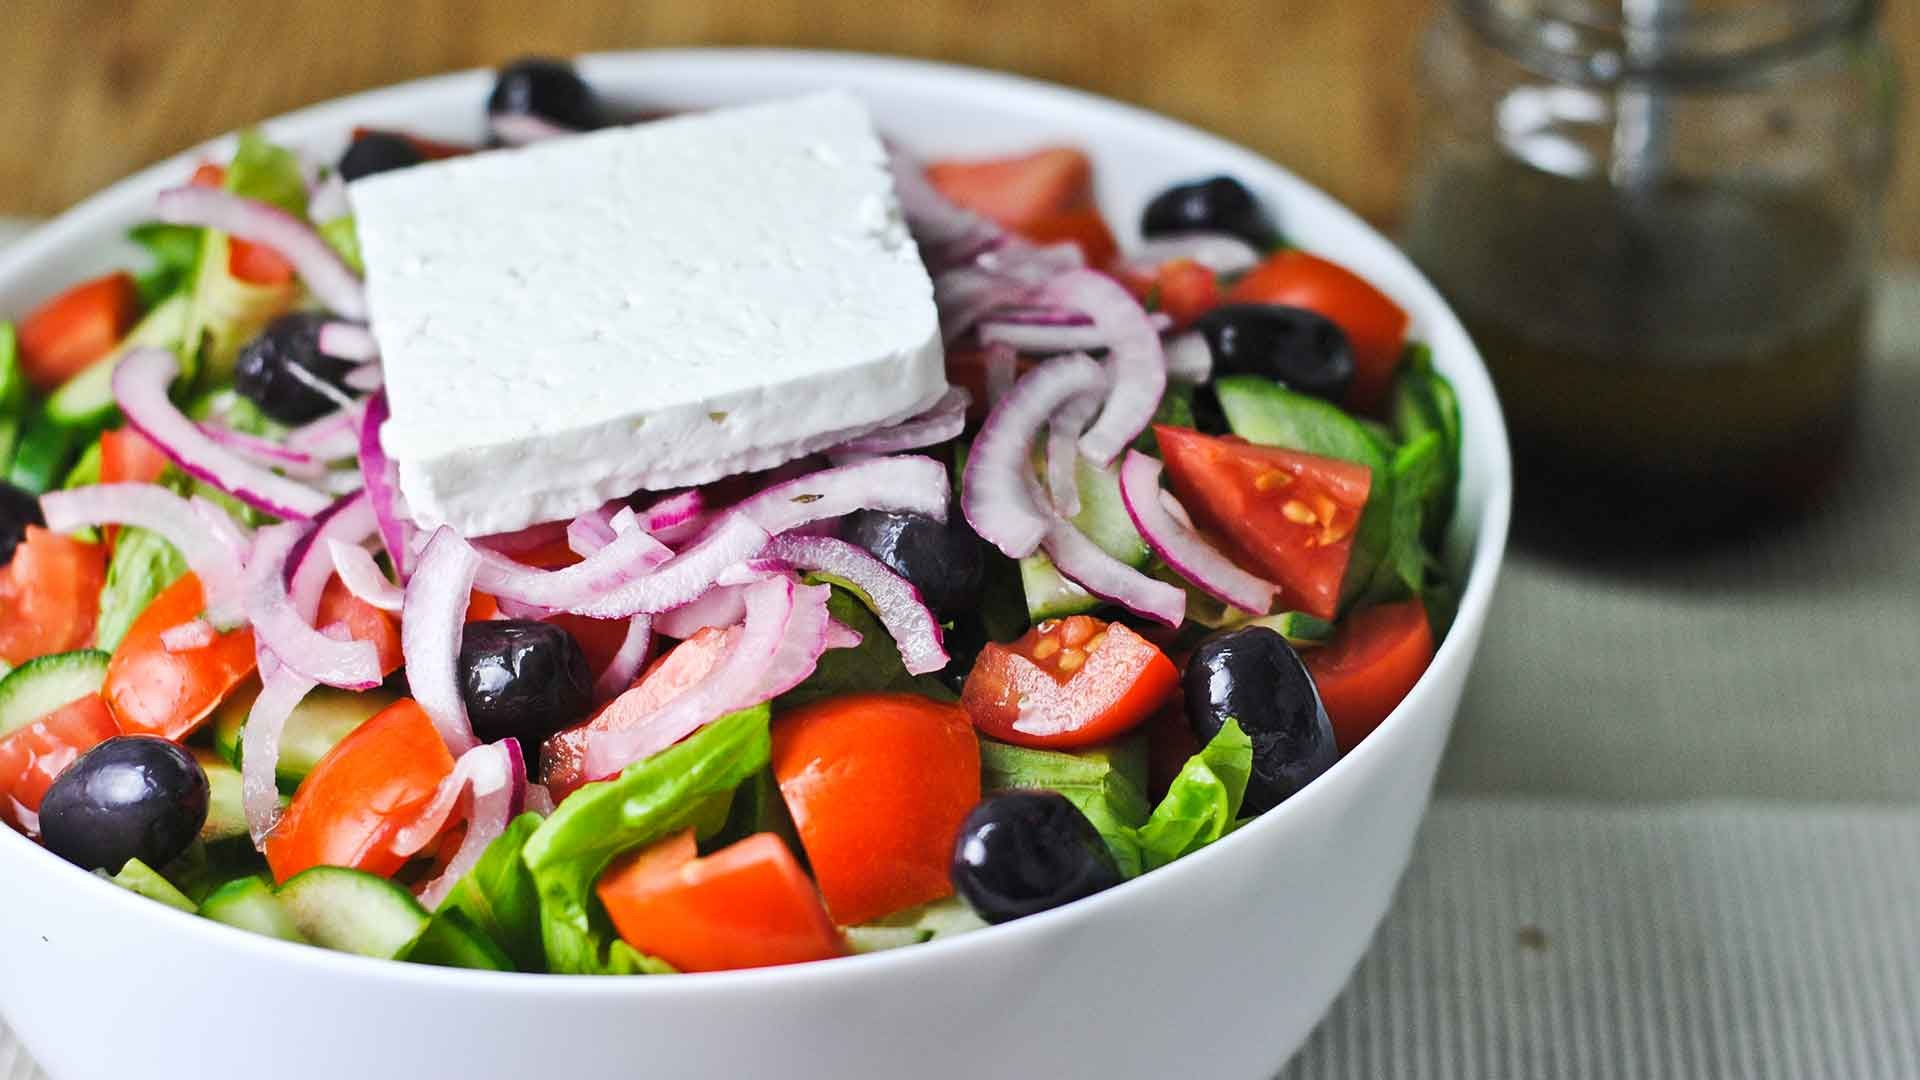 GreekSalad